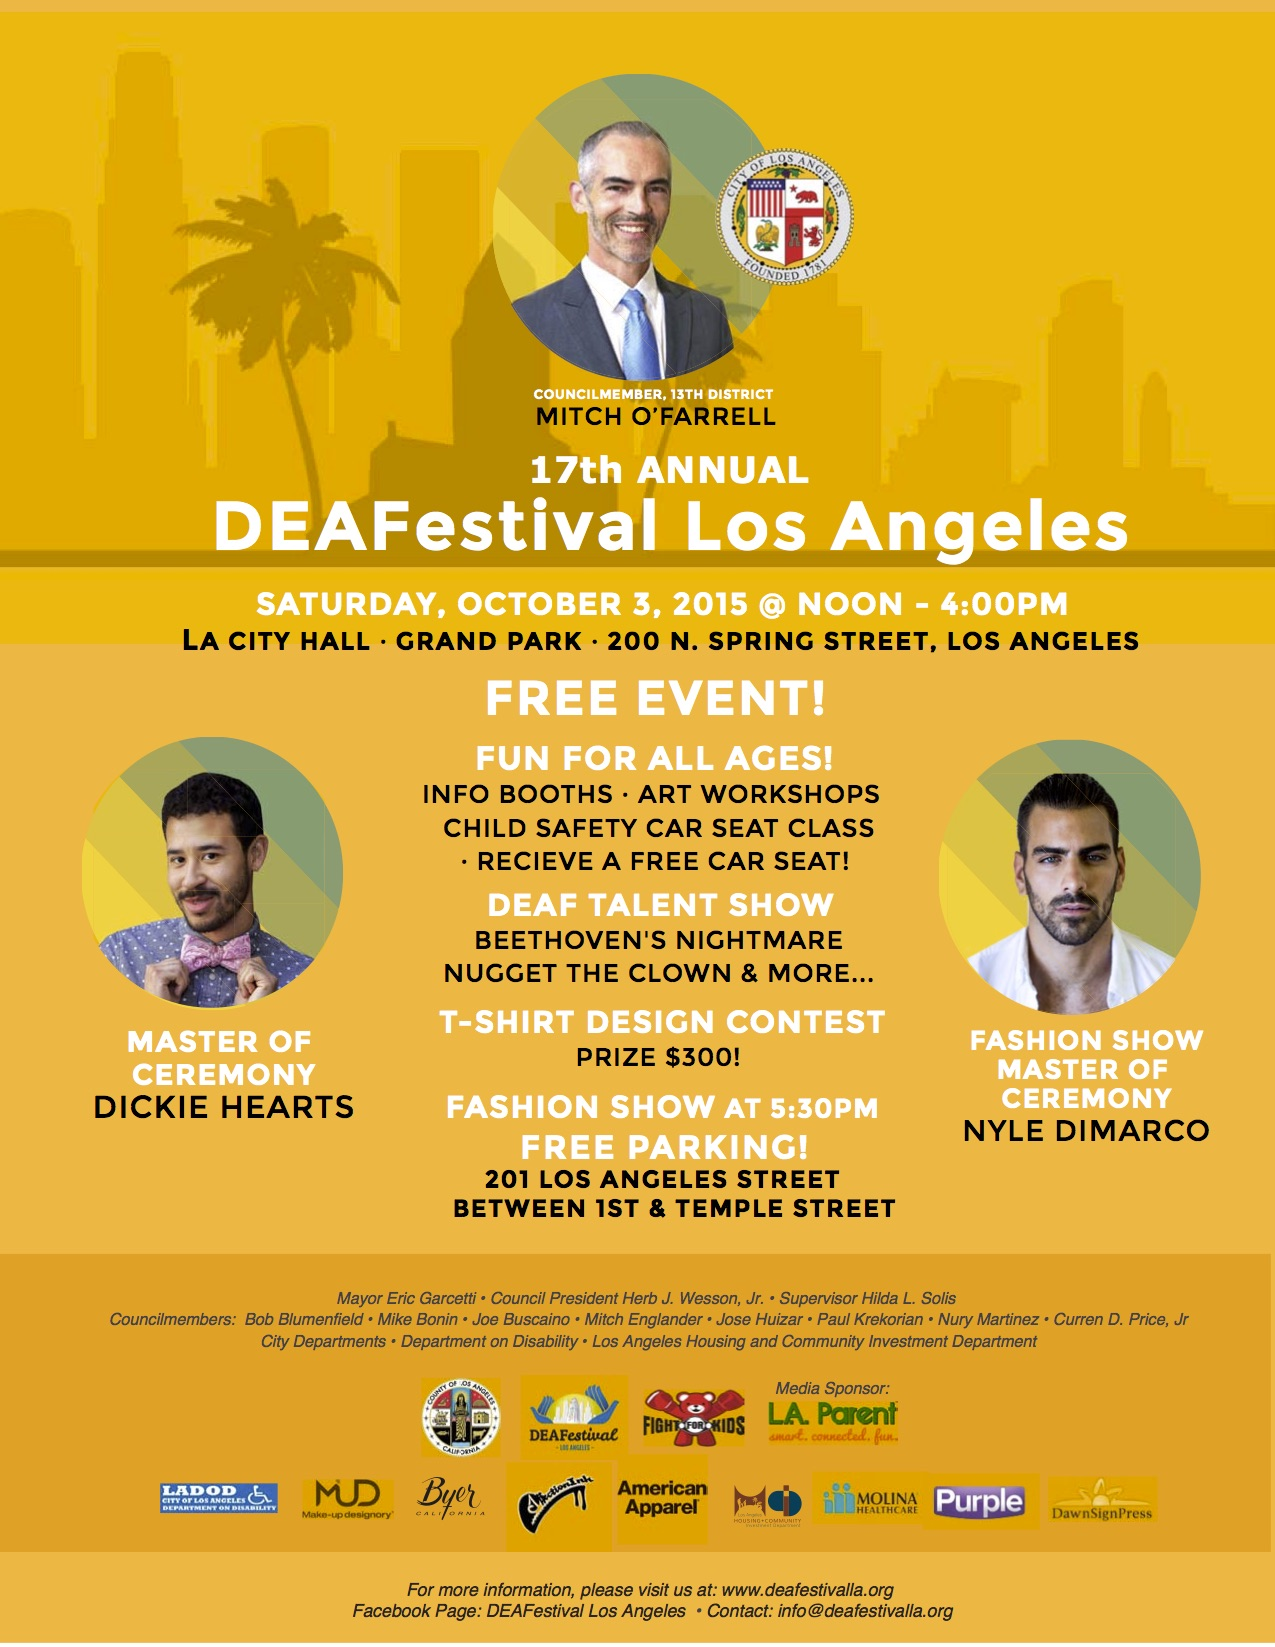 Deafestival Los Angeles 2015